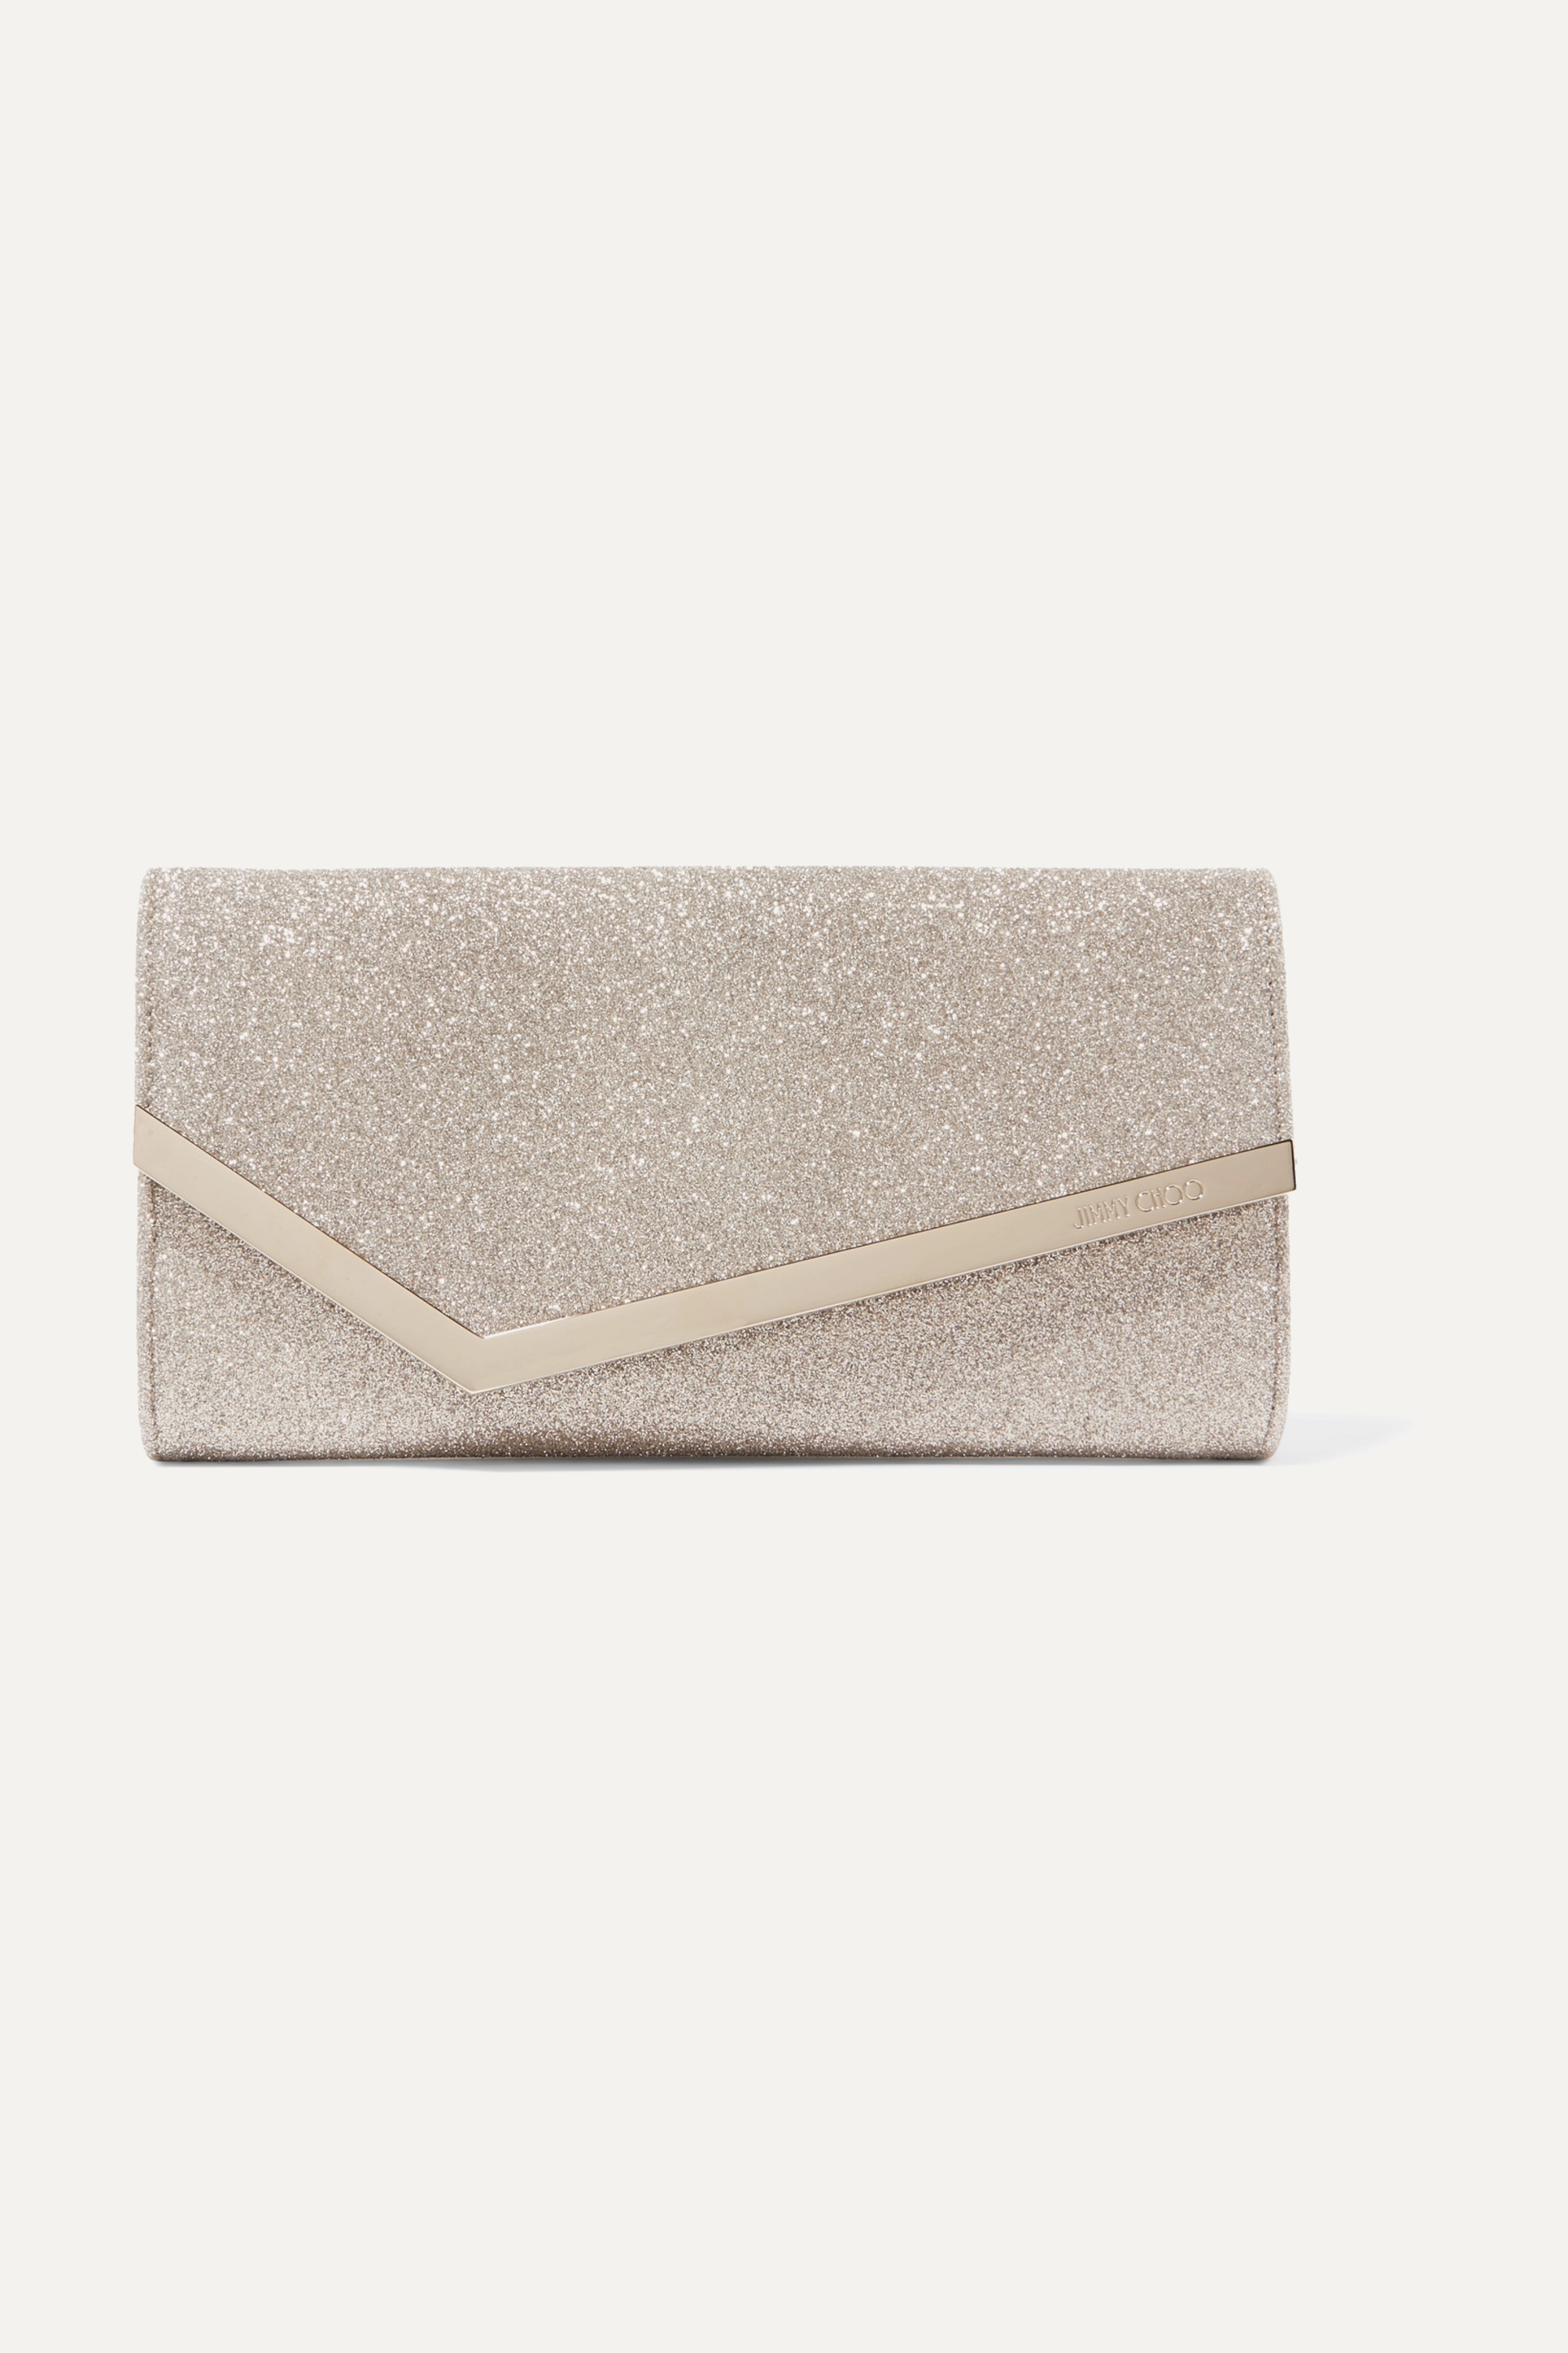 Jimmy Choo Emmie glittered leather clutch